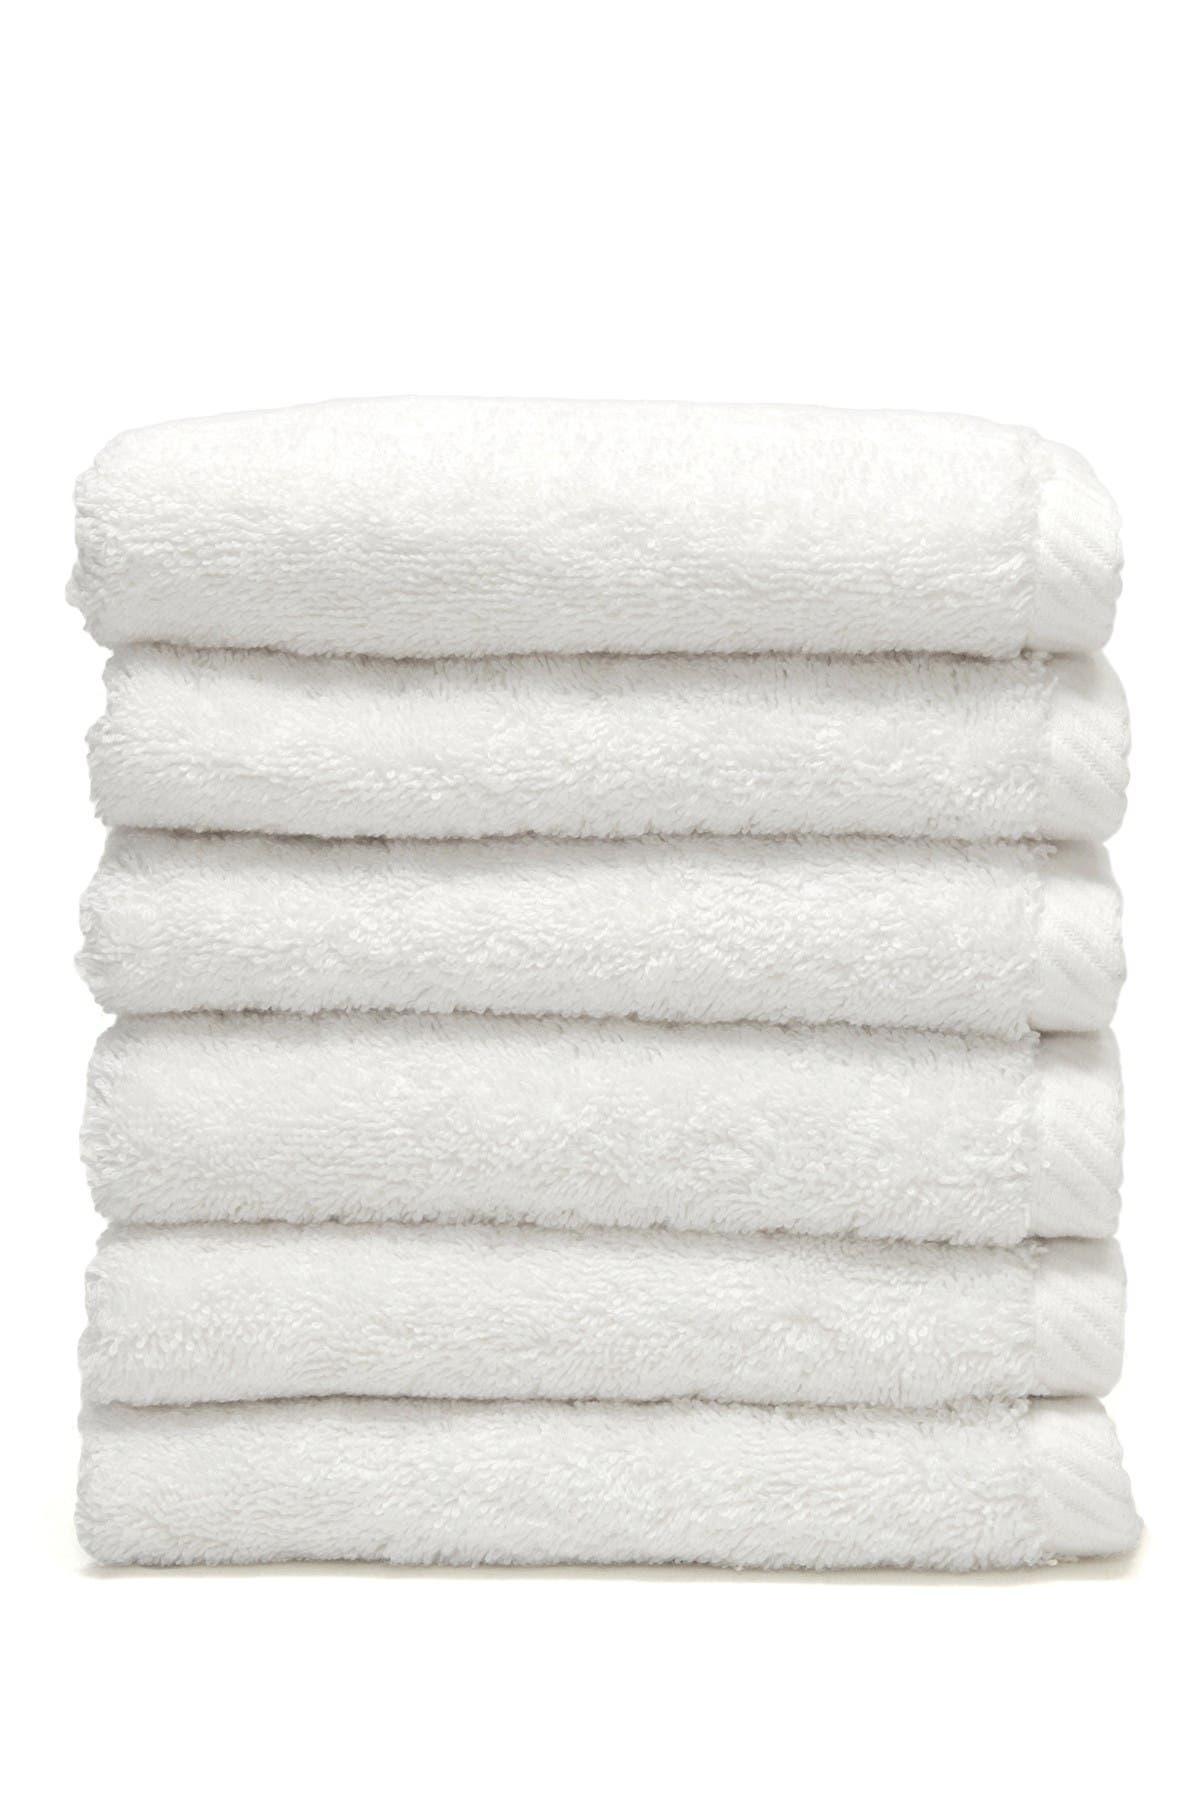 Image of LINUM HOME White Soft Twist Washcloths - Set of 6